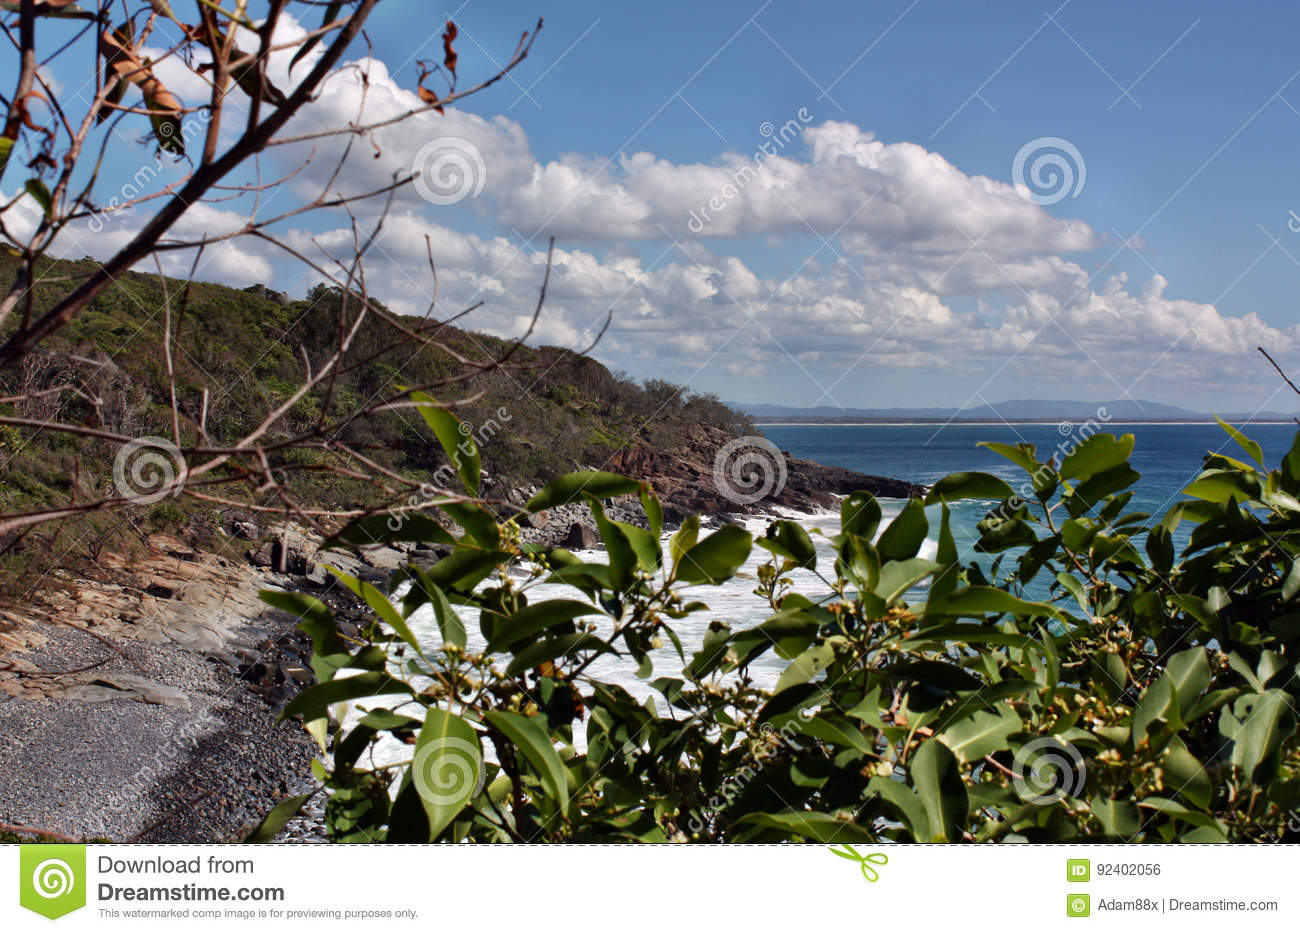 The incredible landscape of Noosa National park on Queensland`s Sunshine Coast, AustraliaThe incredible landscape of Noosa Nationa